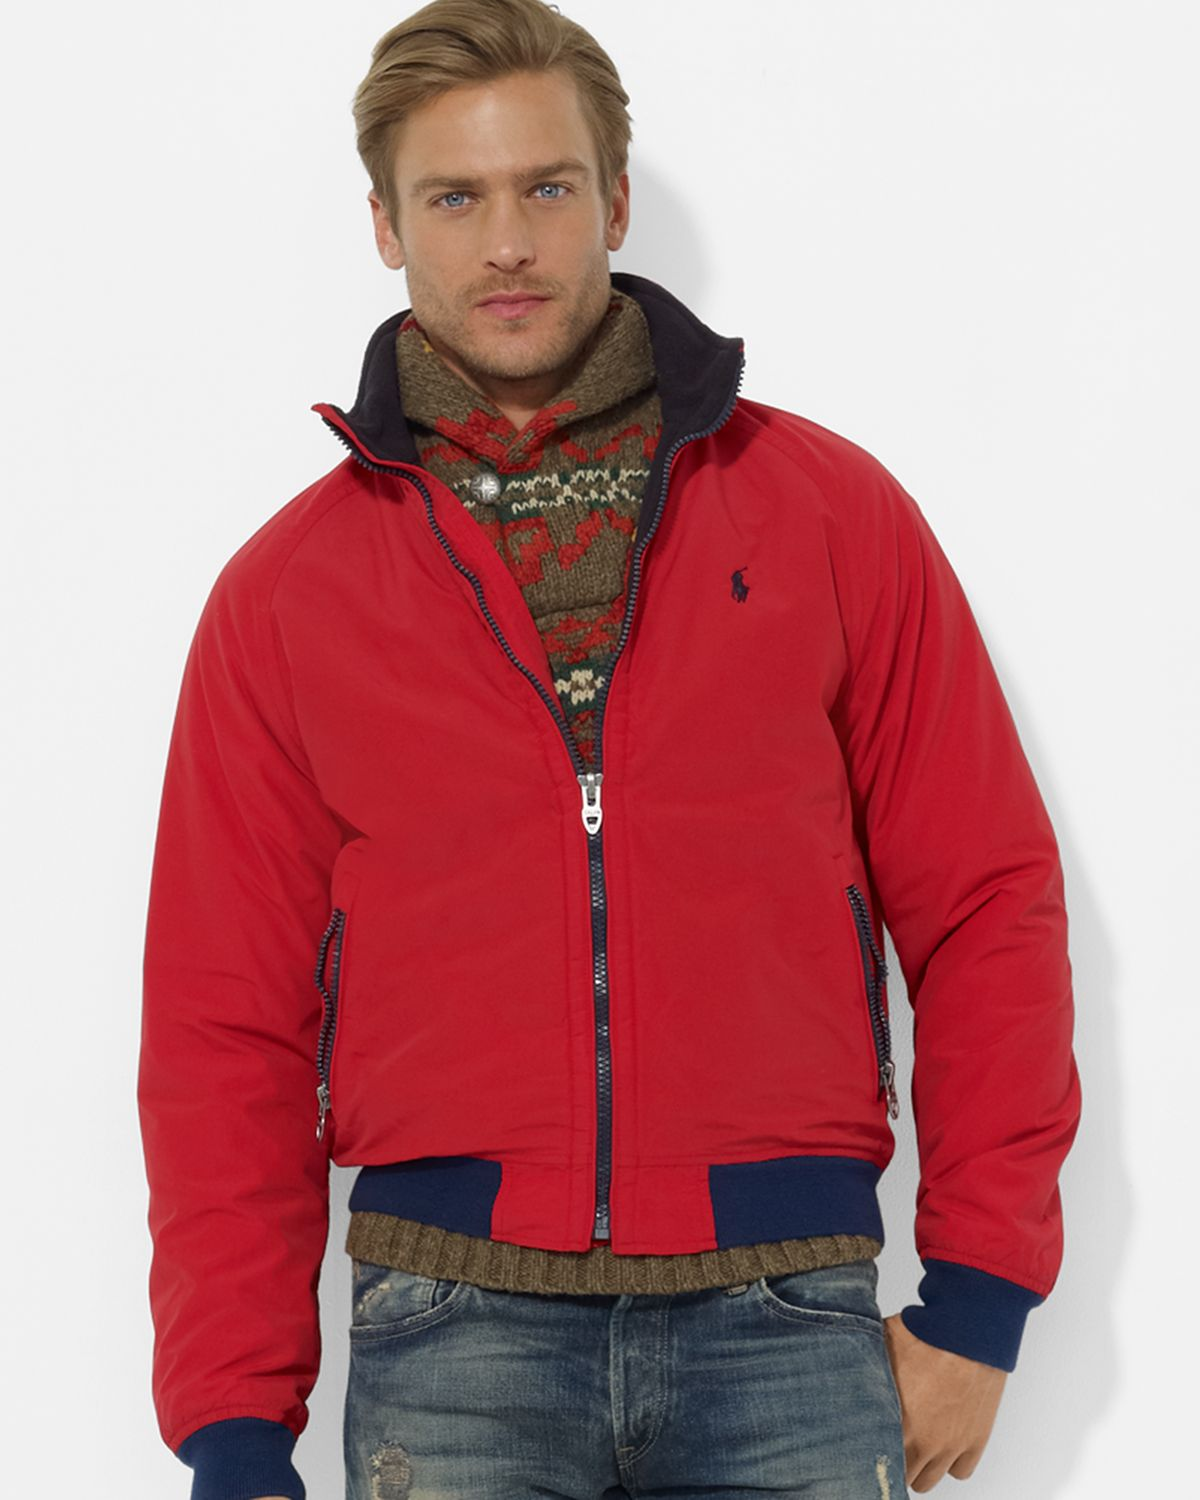 730da93519 italy ralph lauren jackets grey red 3cb53 9dbca